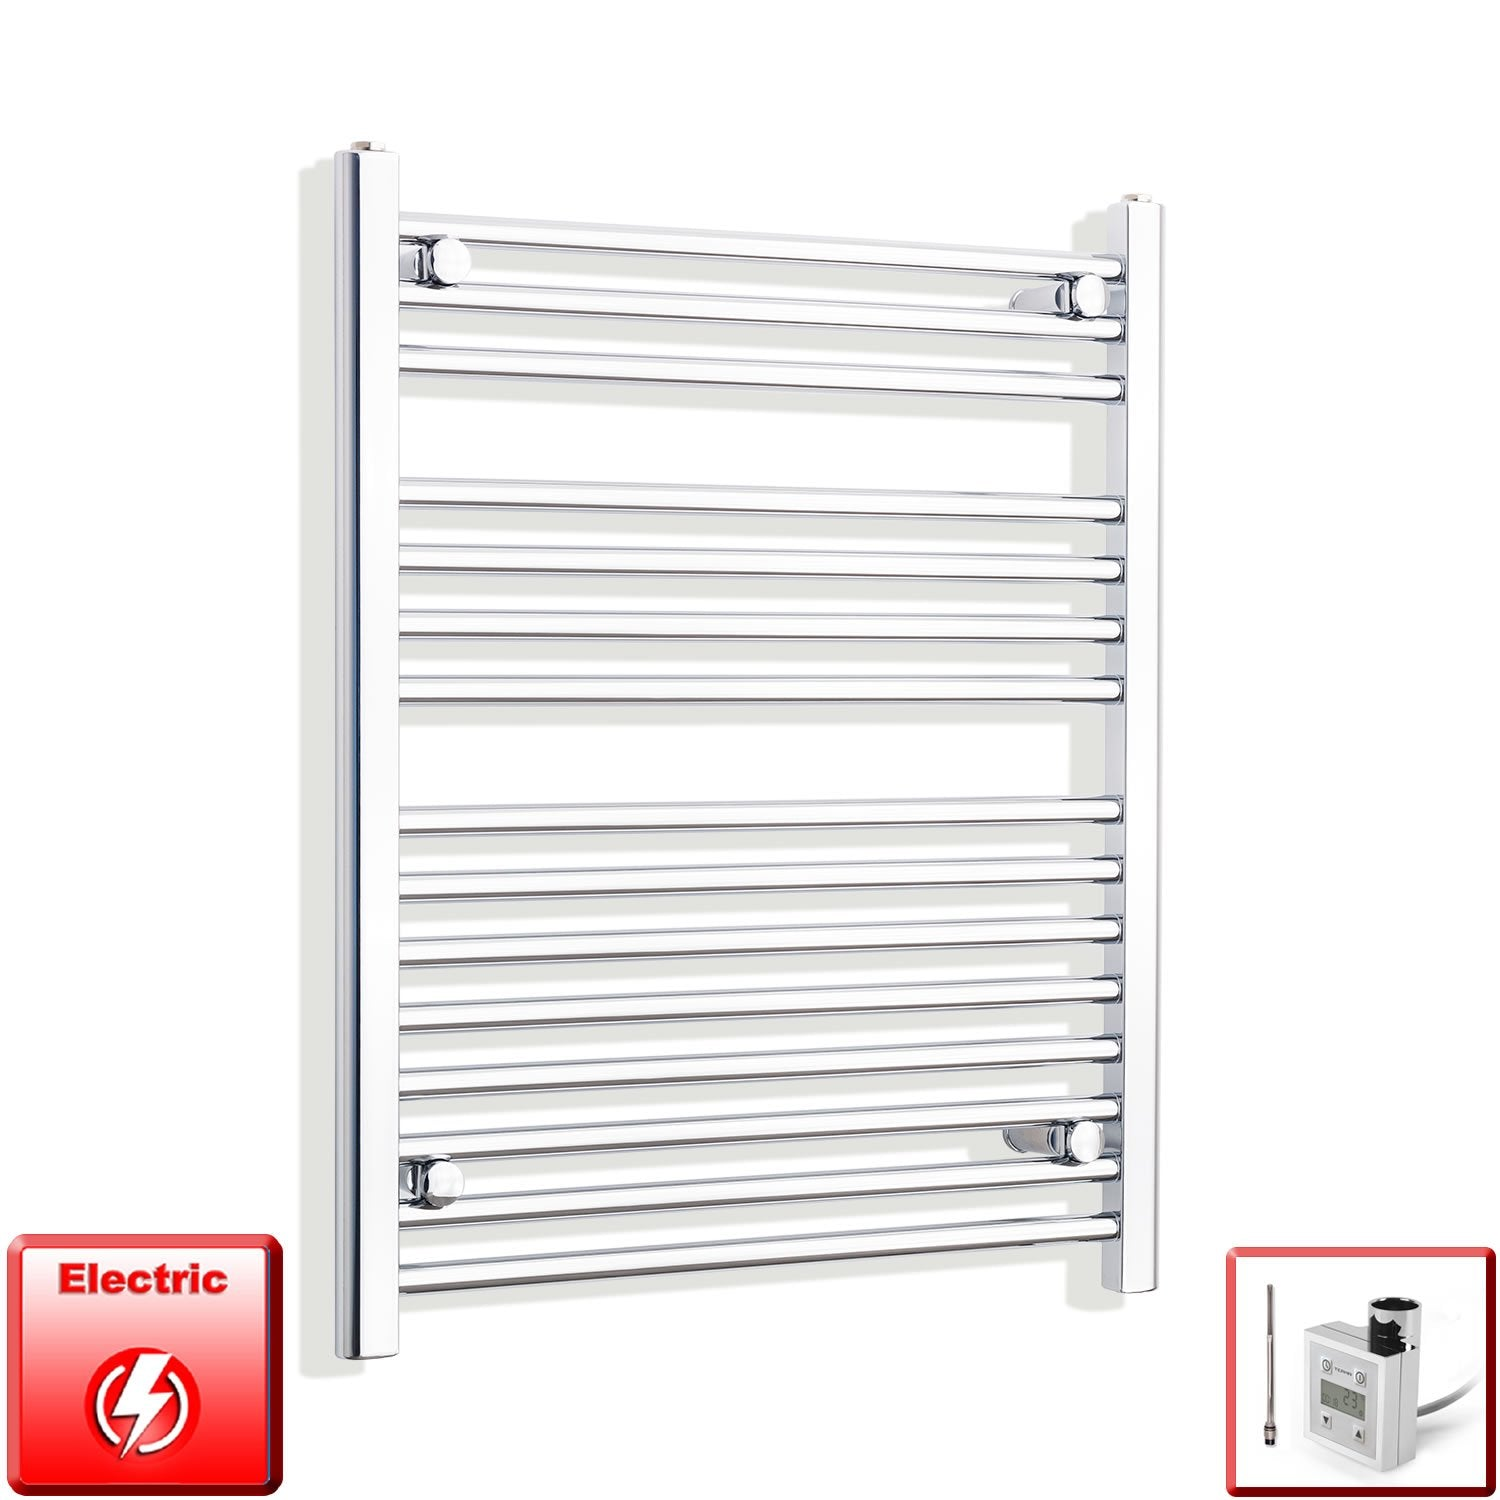 650mm Wide 800mm High Flat Chrome Pre-Filled Electric Heated Towel Rail Radiator HTR,KTX-3 Thermostatic Element